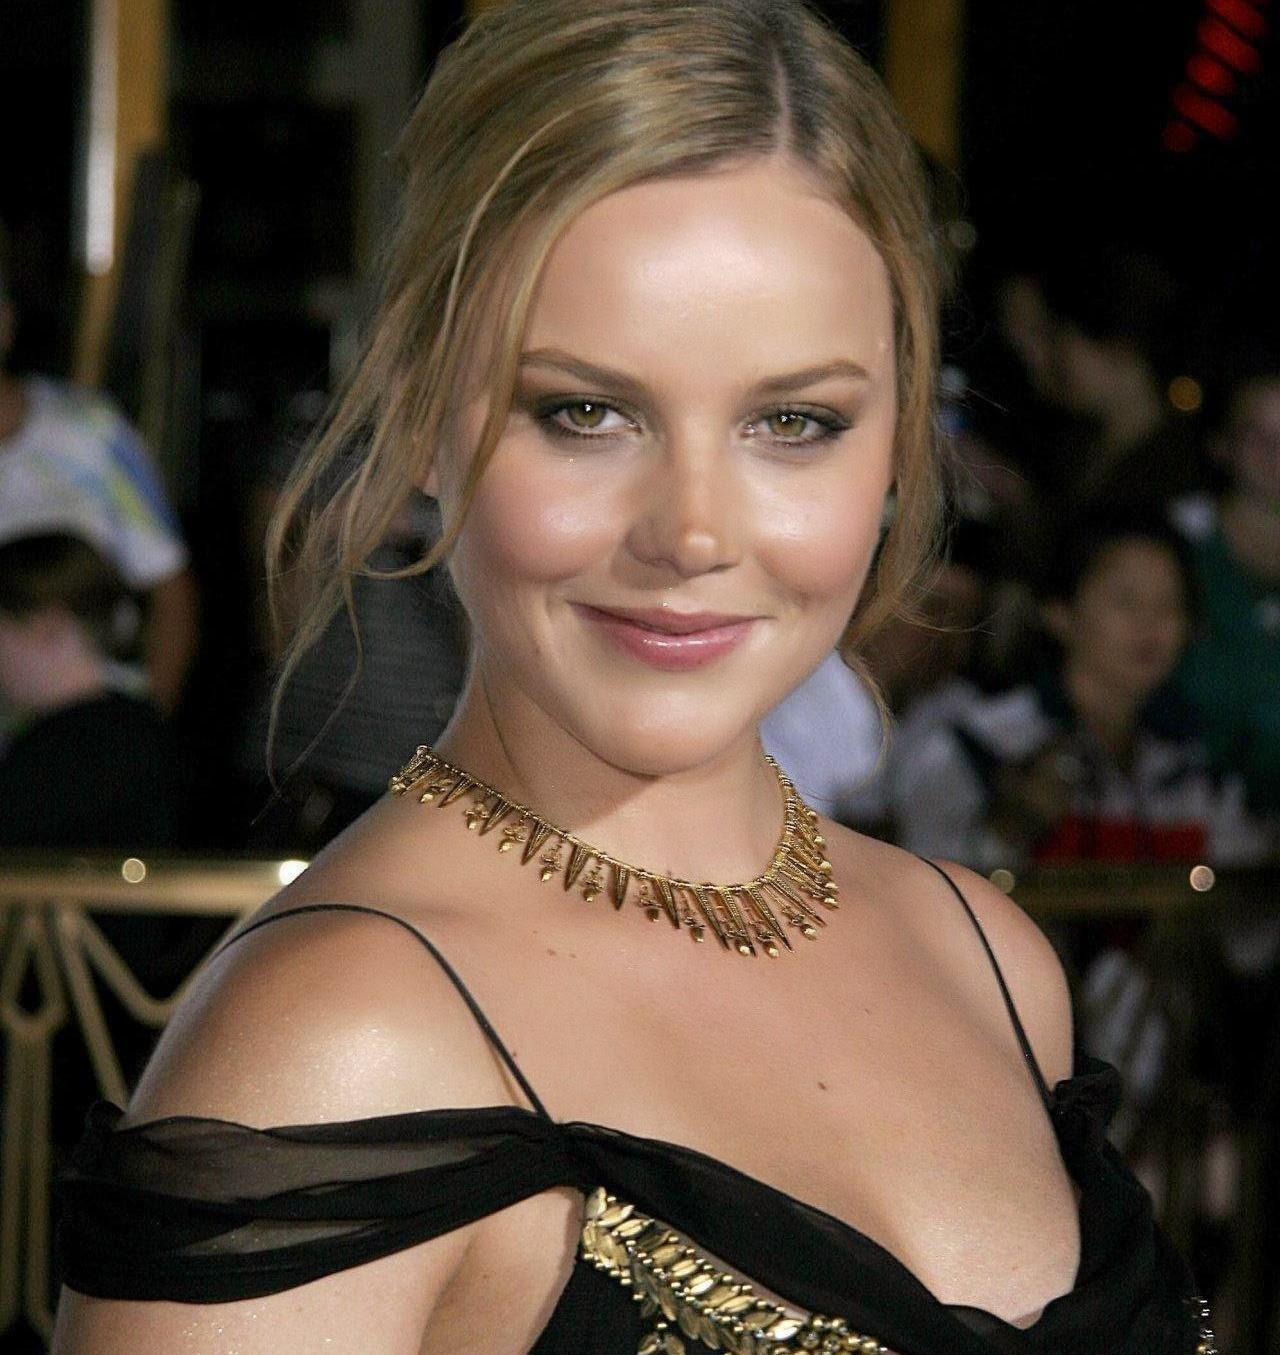 Hollywood Actress Wallpaper: Abbie Cornish HD Wallpapers